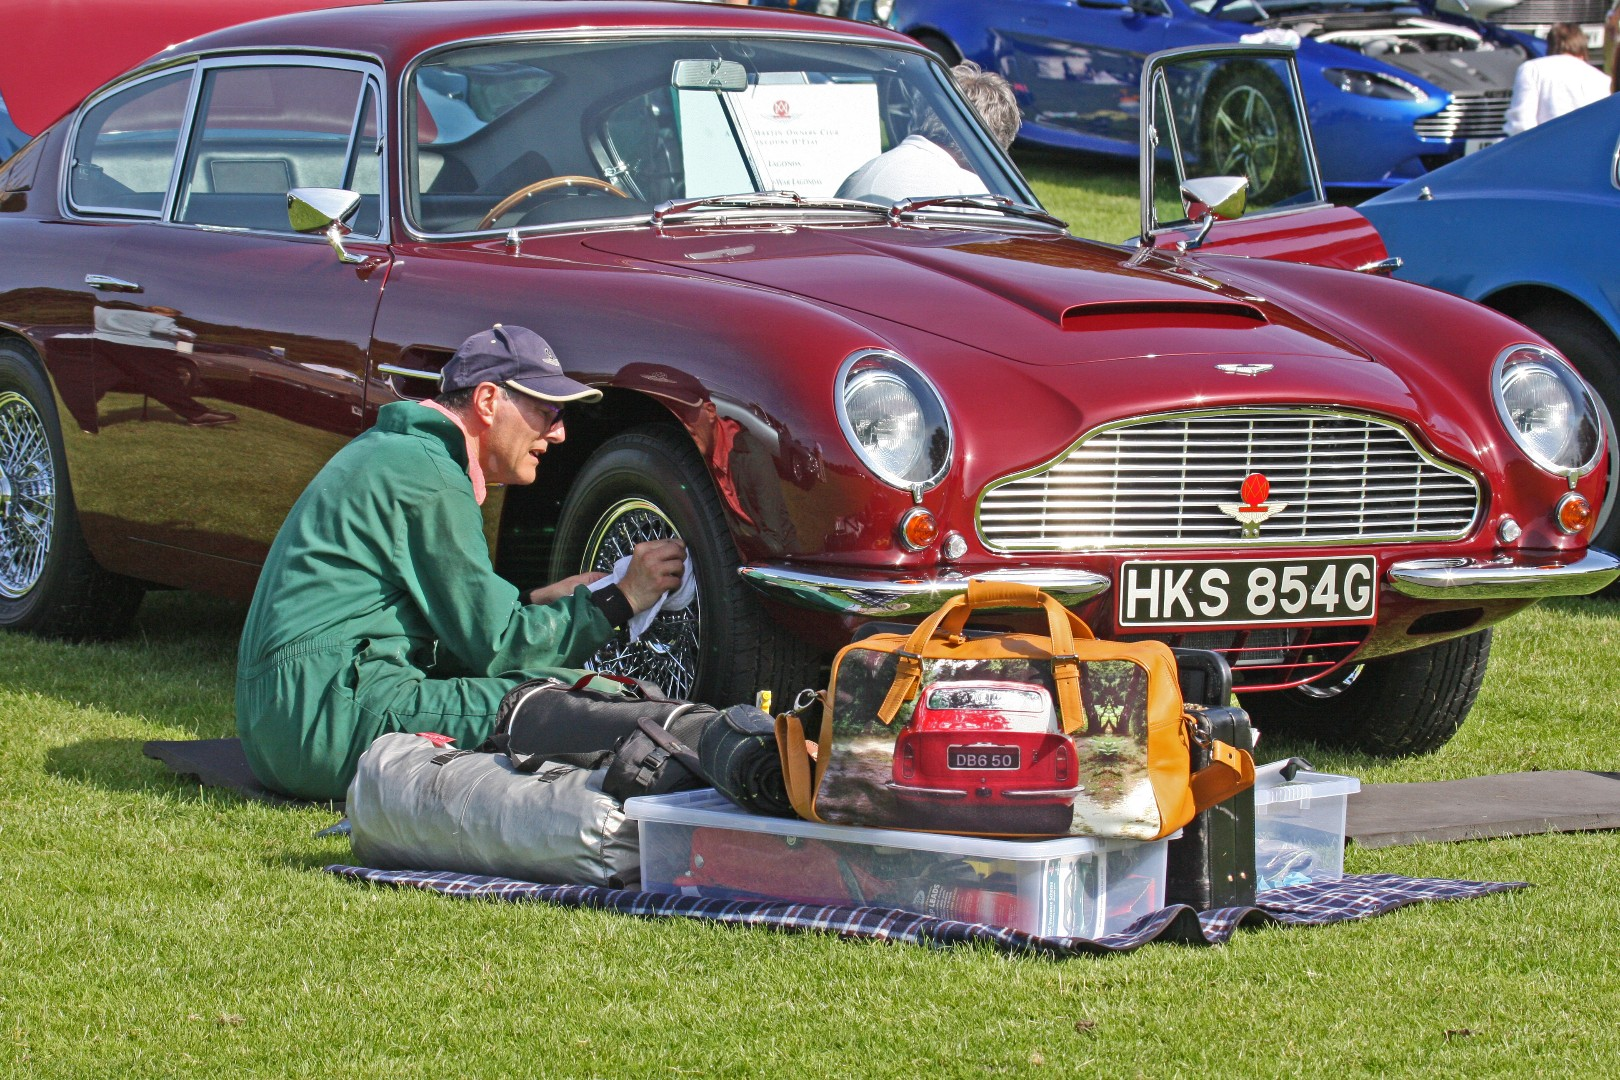 180603_Englefield Concours_AFawkesDB6_IanKendall.jpg